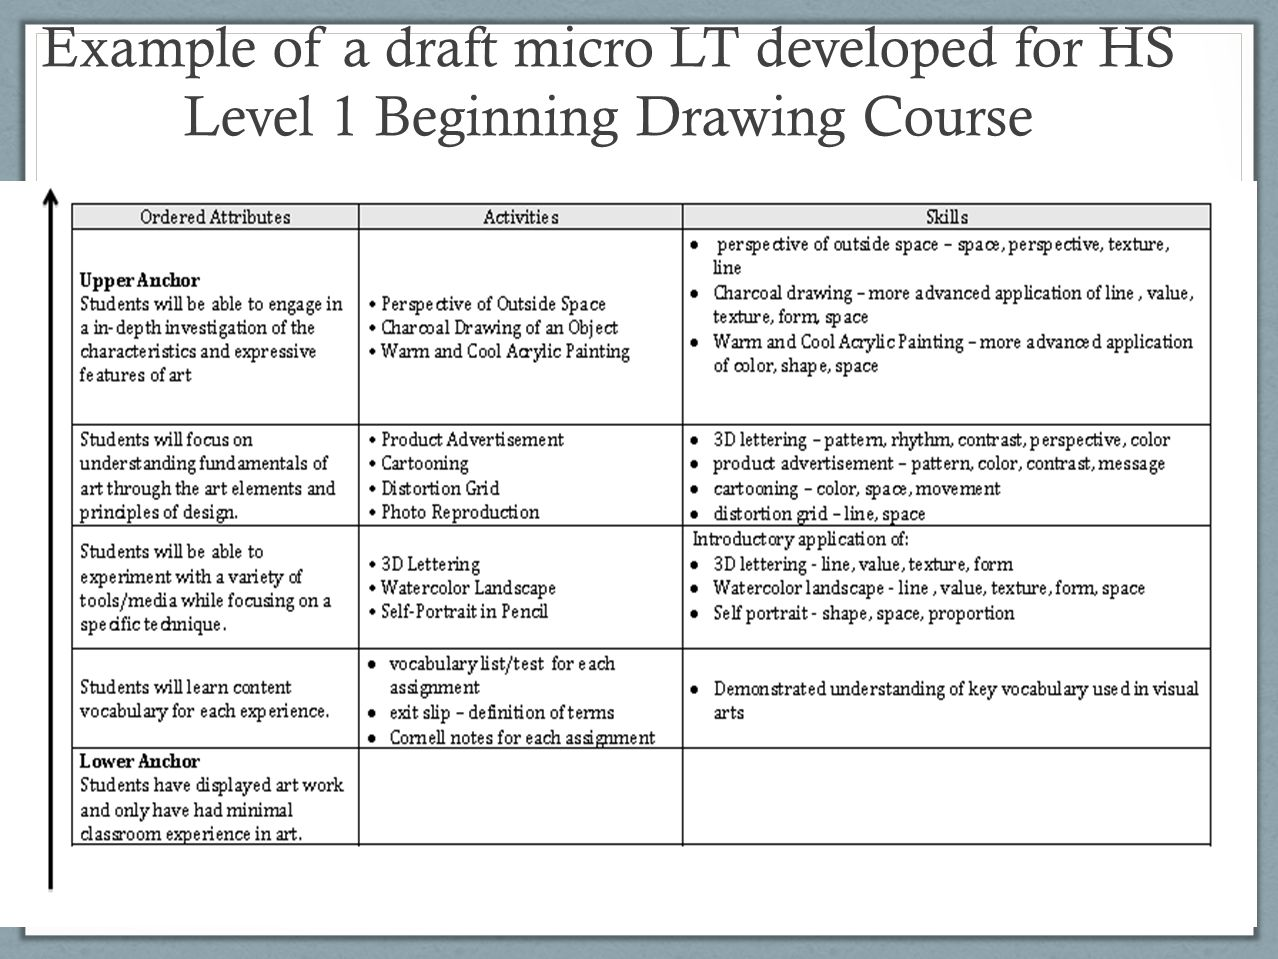 Example of a draft micro LT developed for HS Level 1 Beginning Drawing Course